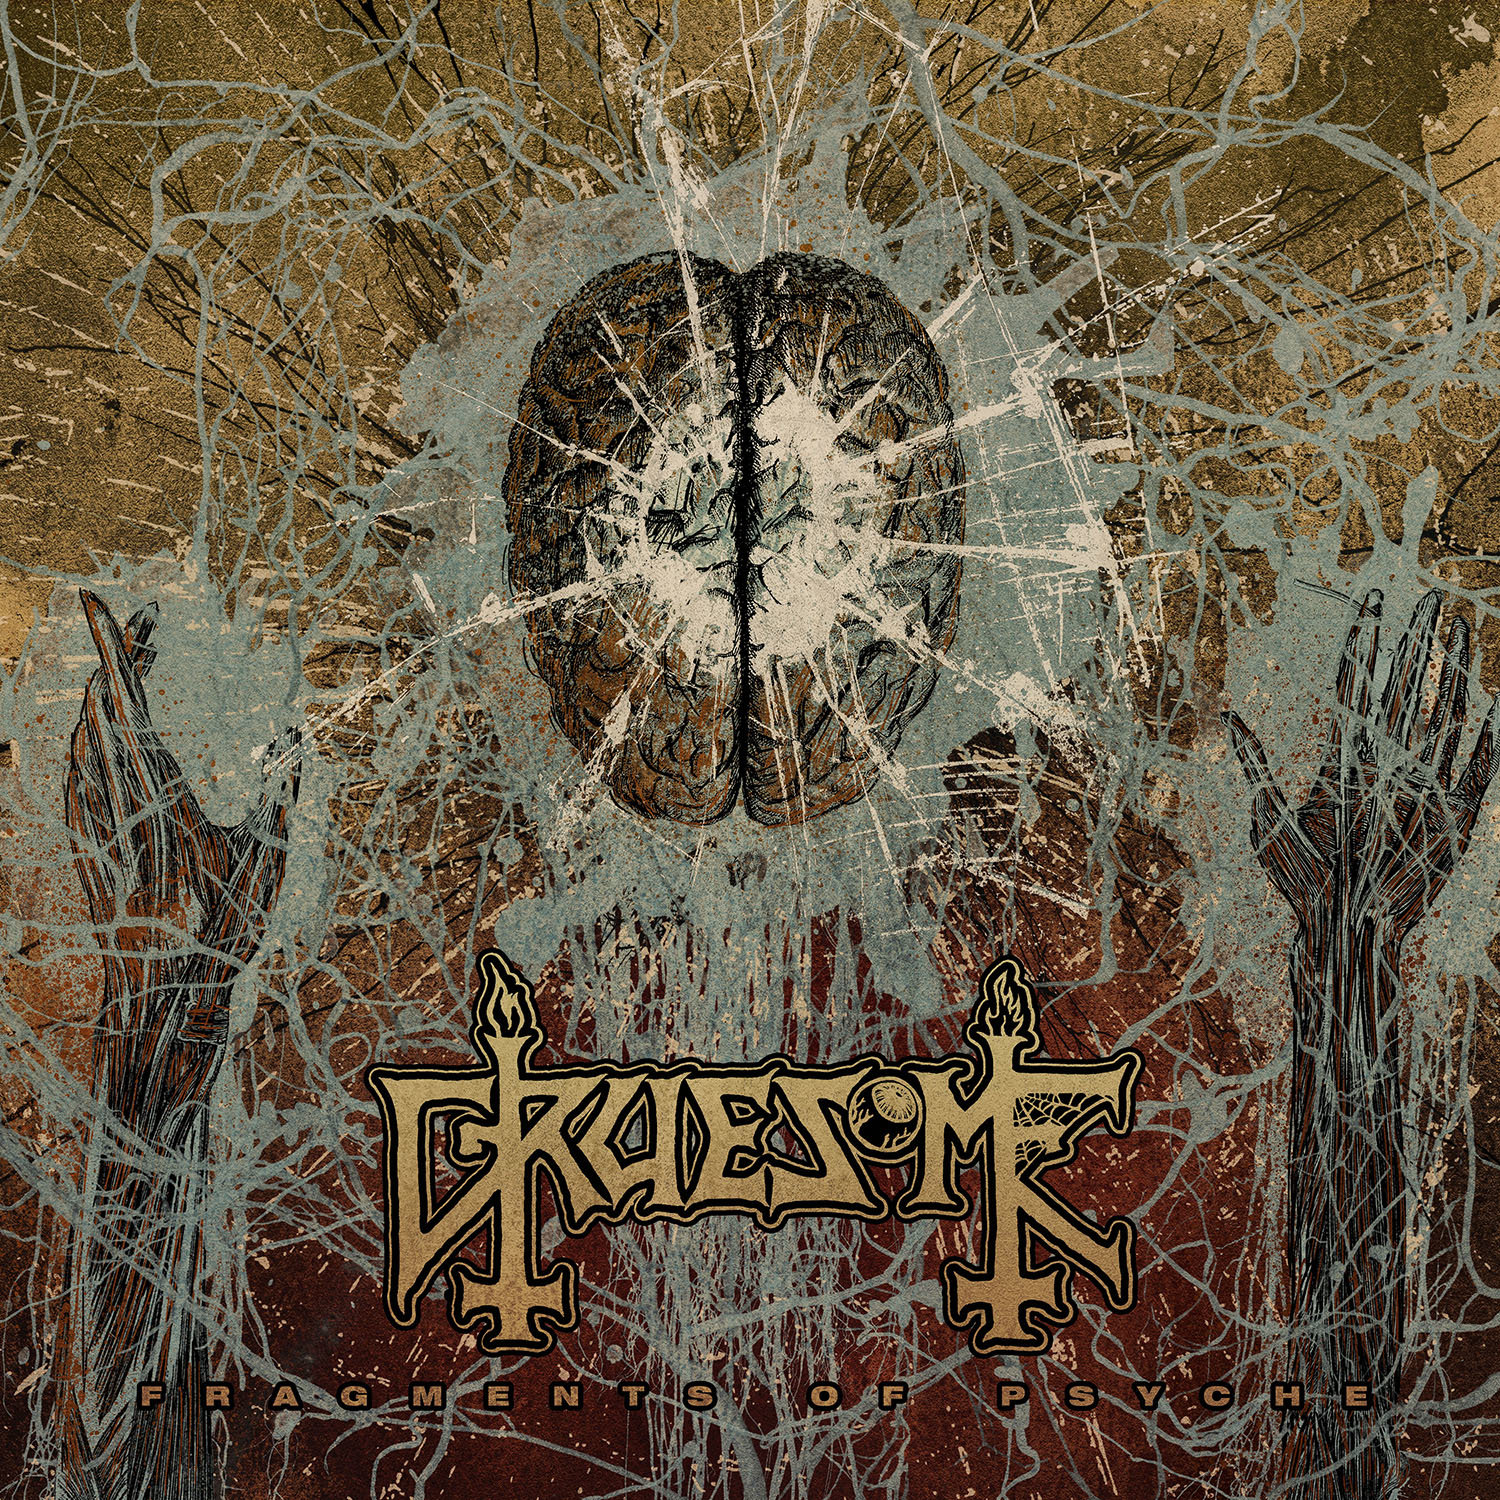 Gruesome : Fragments Of Psyche